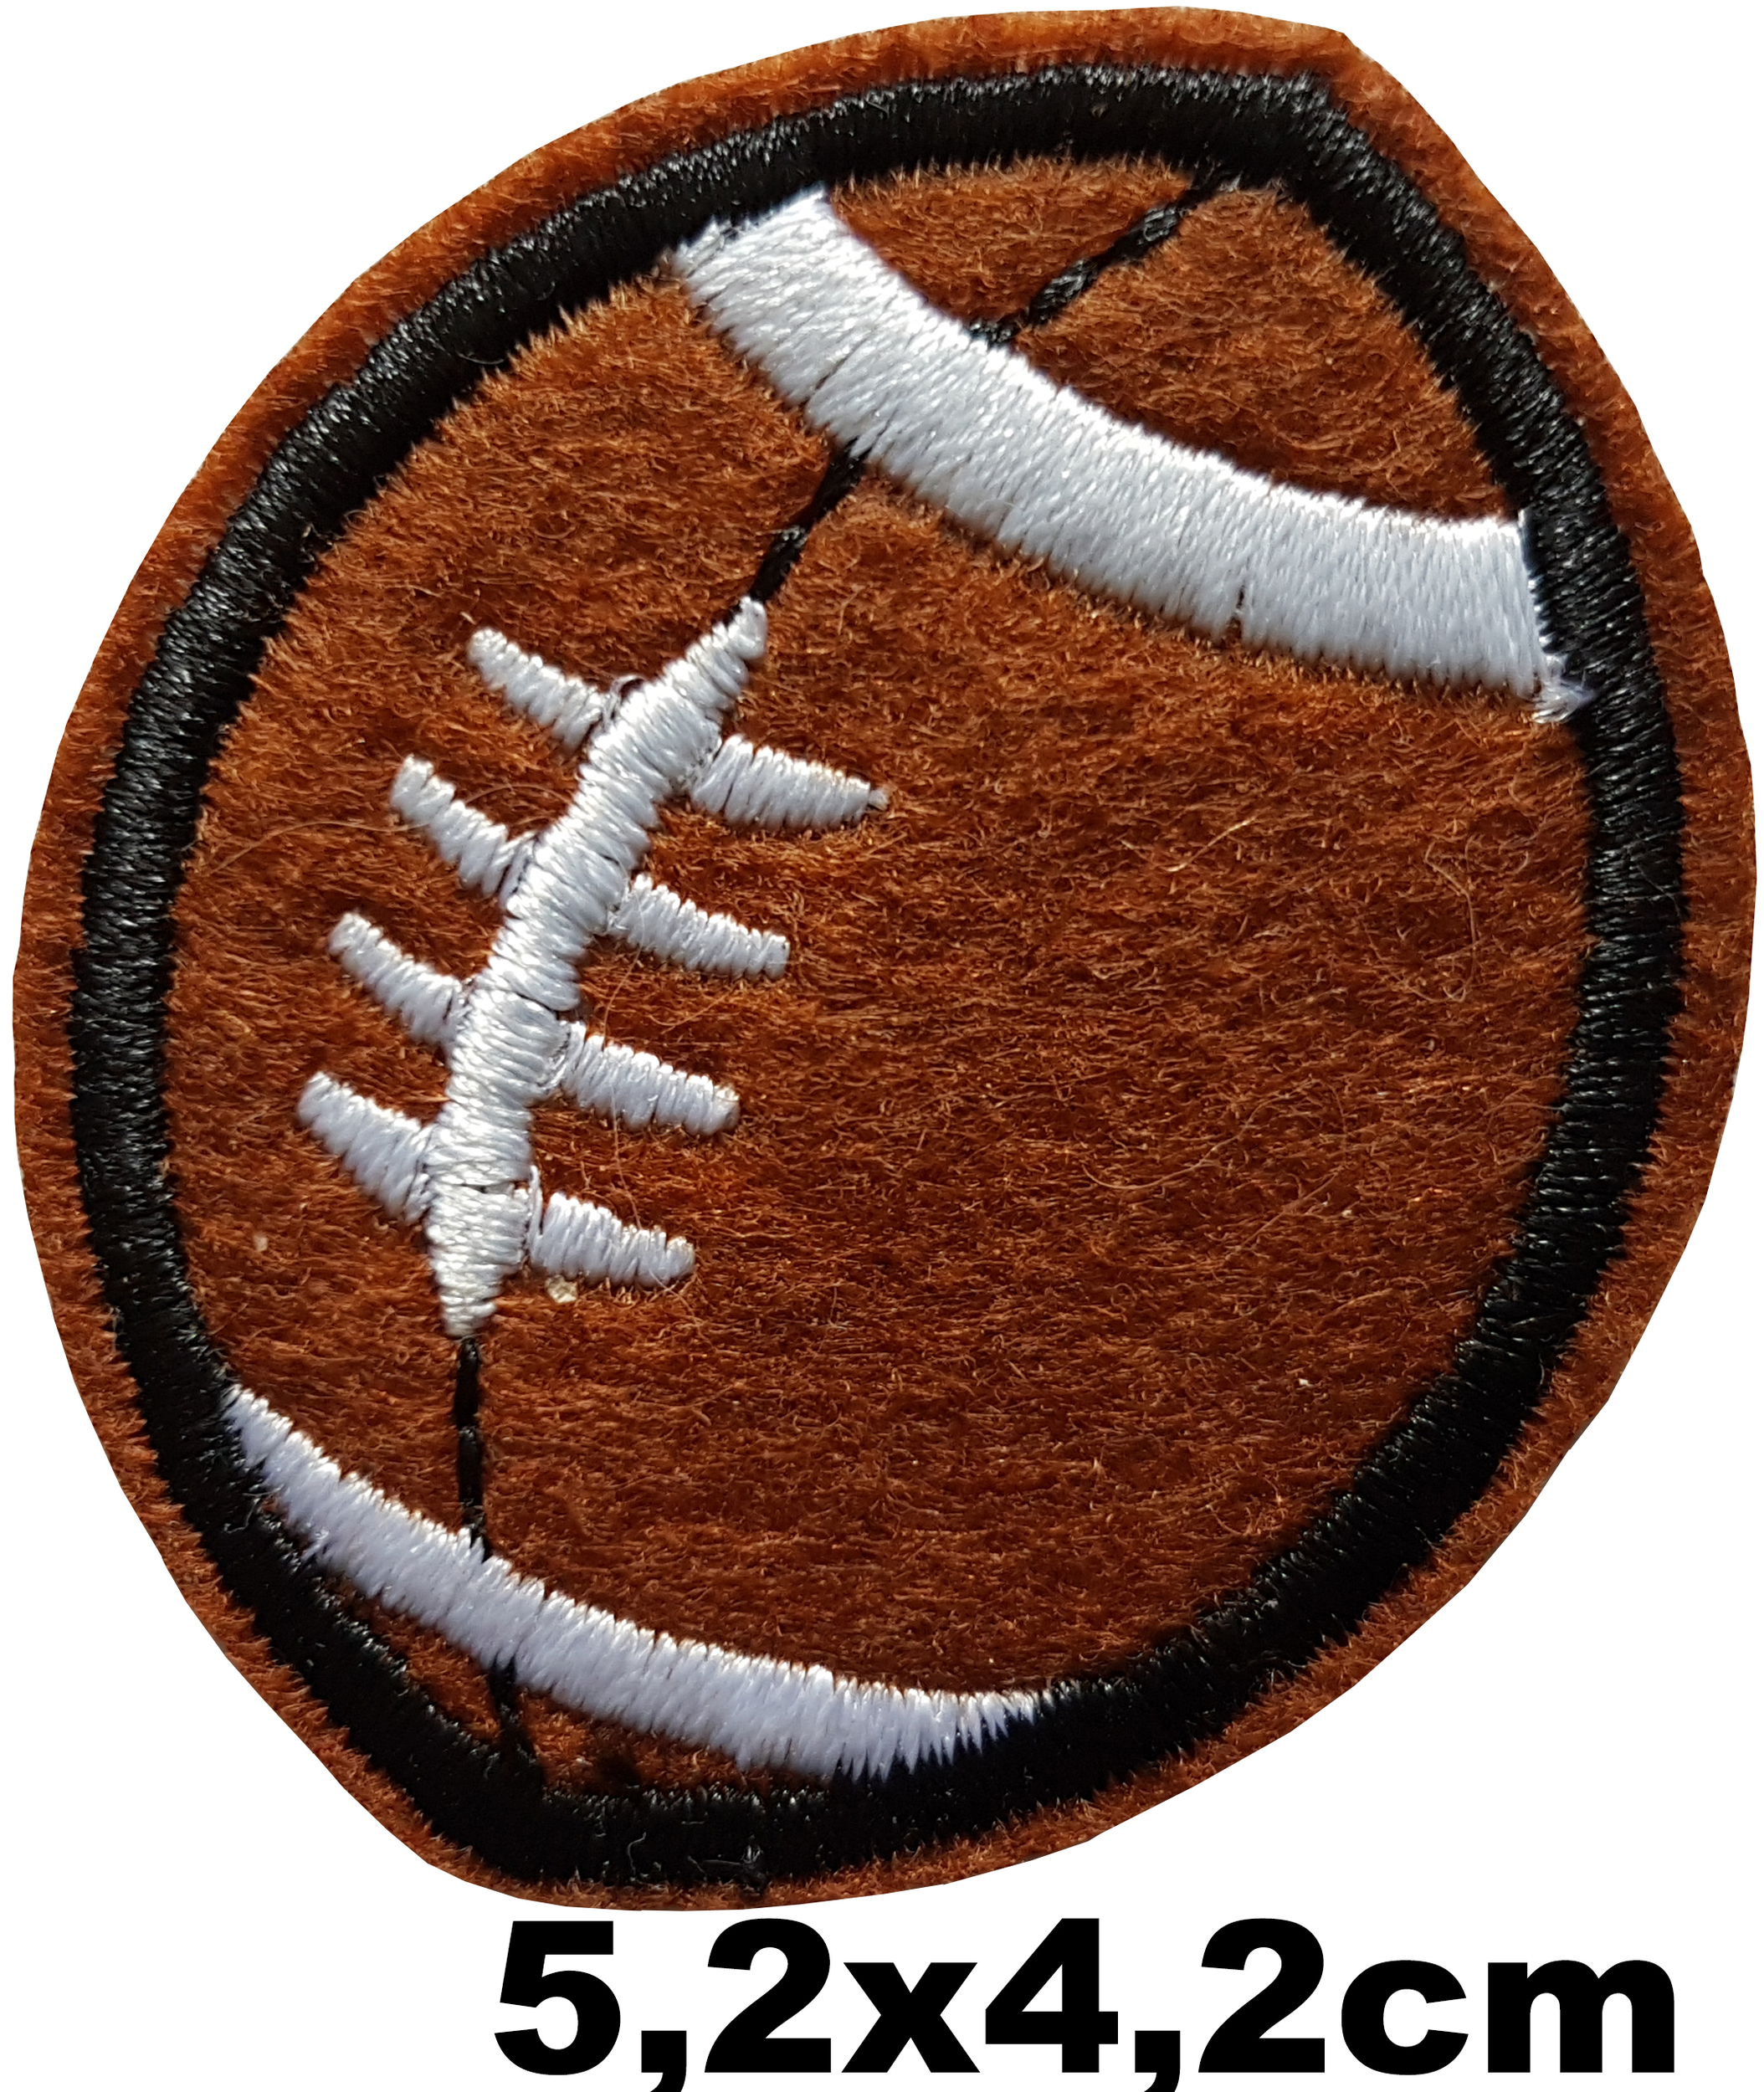 Patch thermocollant ballon de rugby